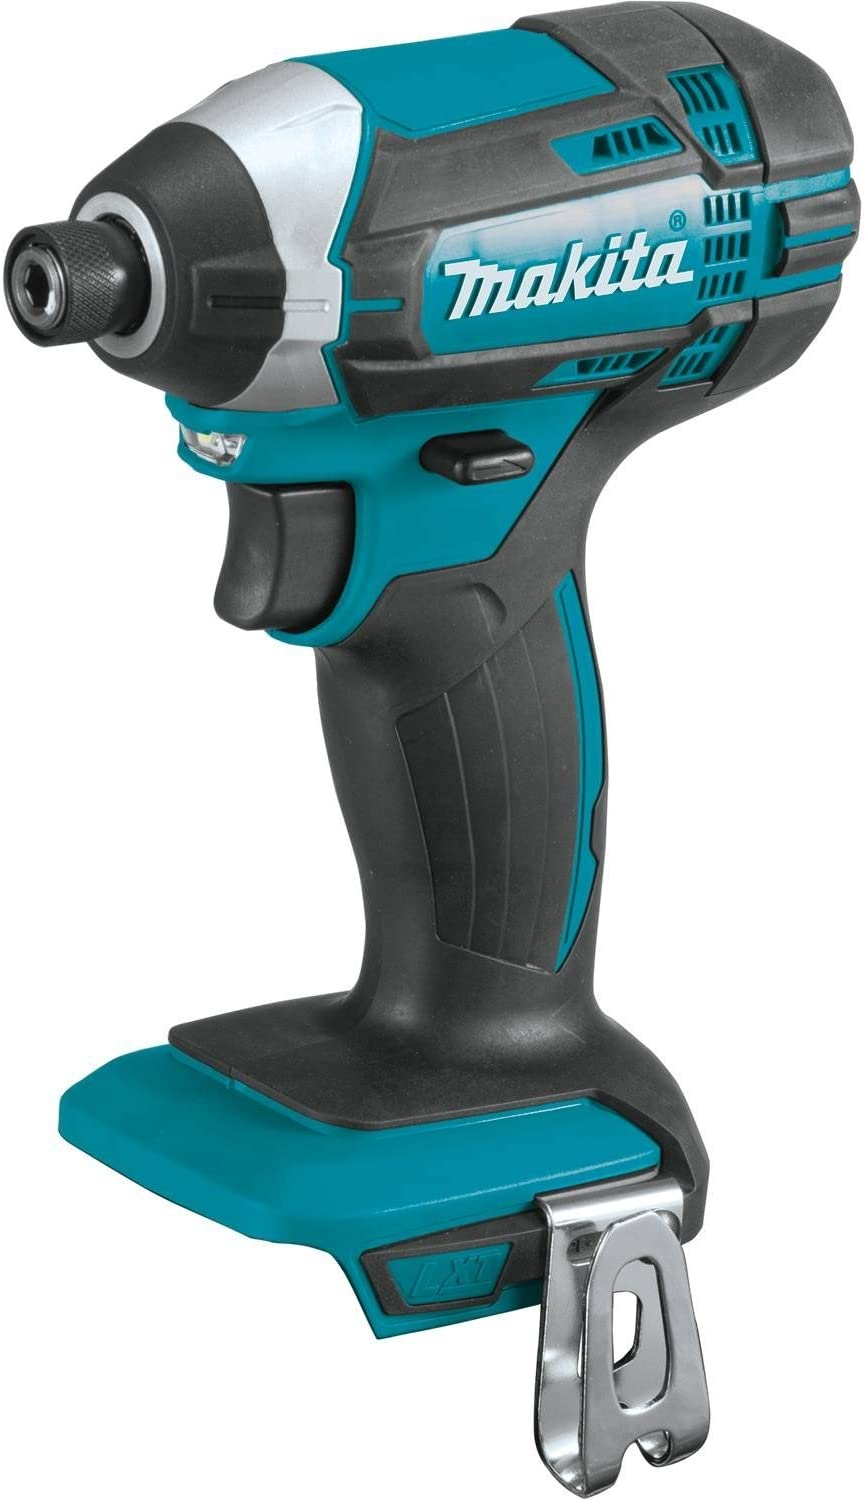 Makita XT706 Cordless Combo Kit Review 1